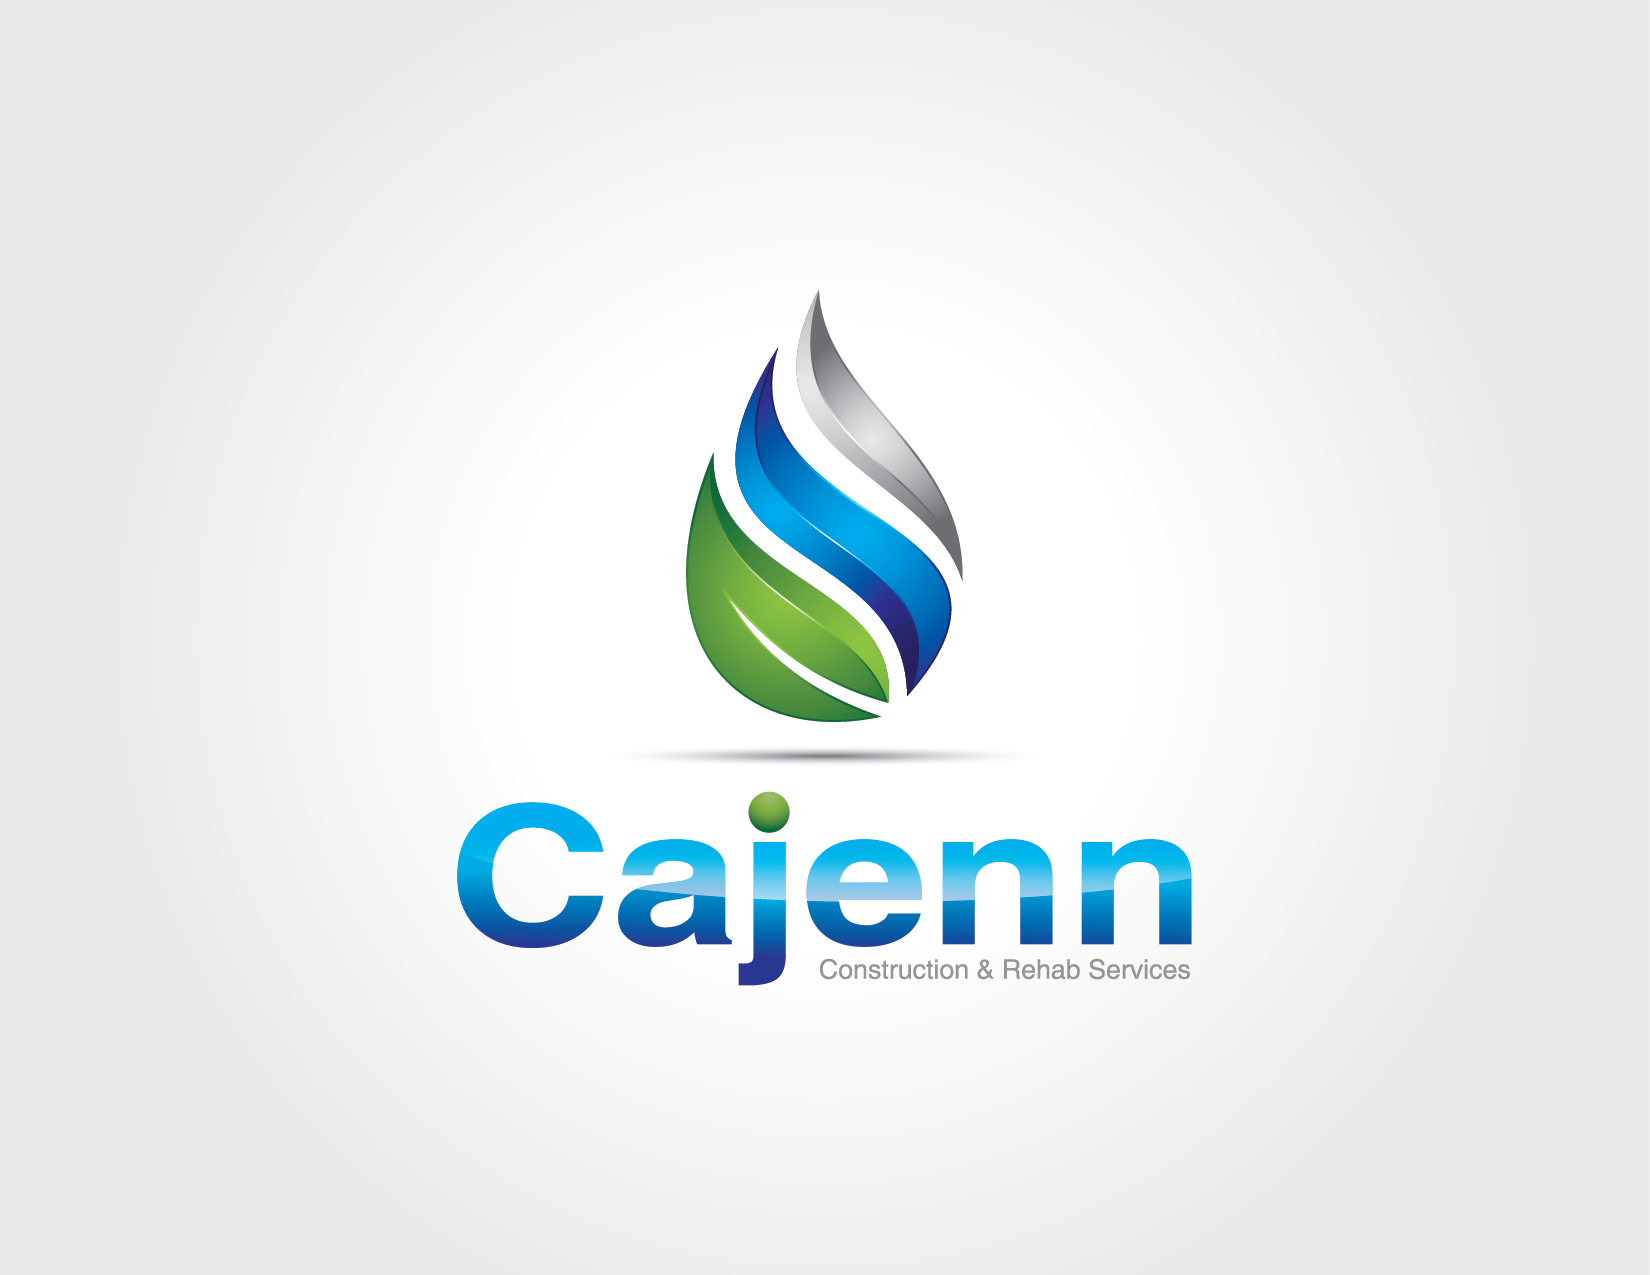 Logo Design by Yansen Yansen - Entry No. 156 in the Logo Design Contest New Logo Design for CaJenn Construction & Rehab Services.